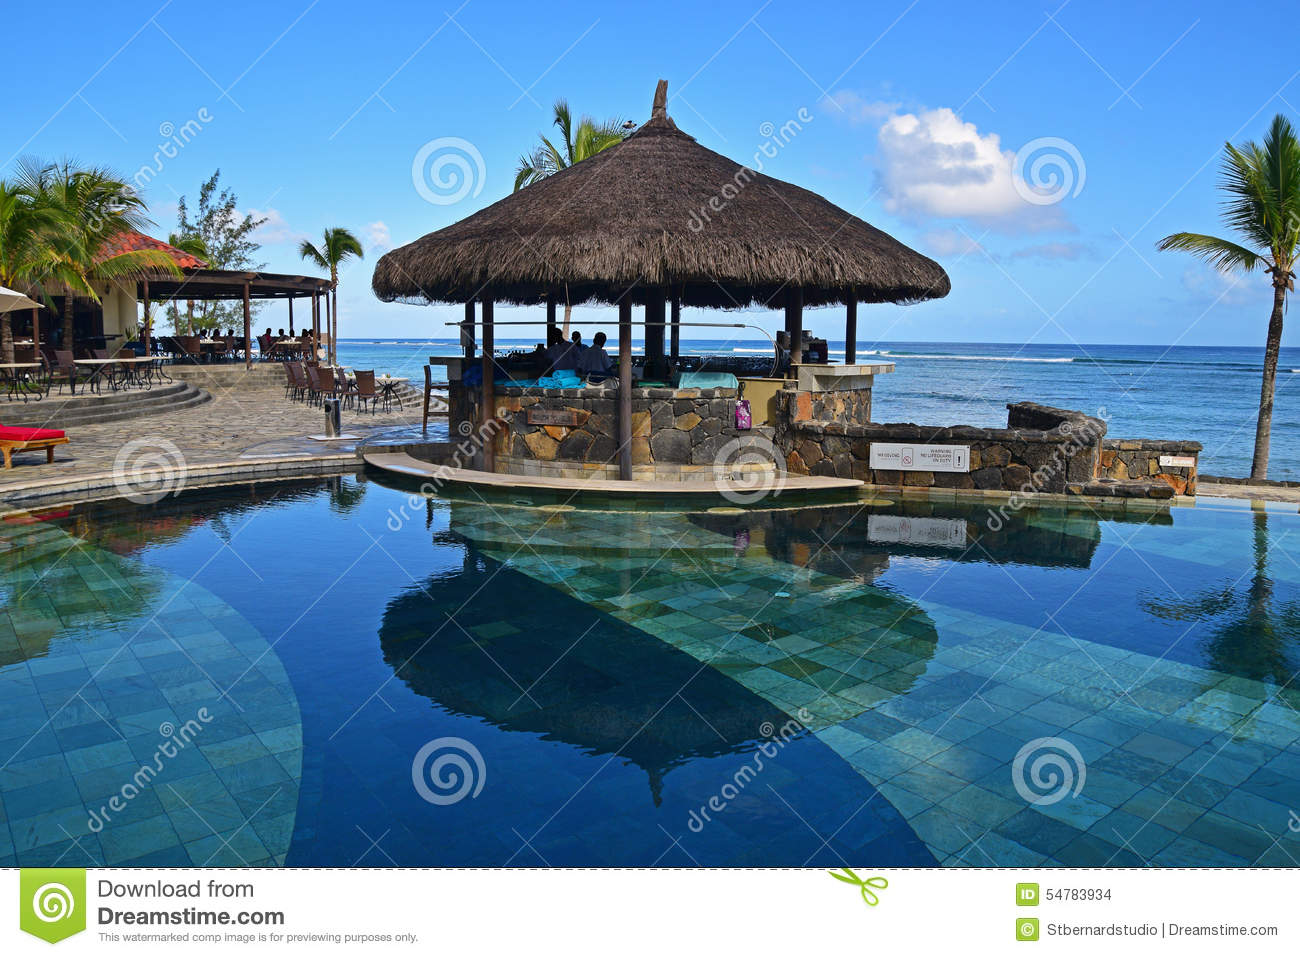 Gazebo bar next to a pool at tropical beach of a hotel for La piscine pool bar restaurant